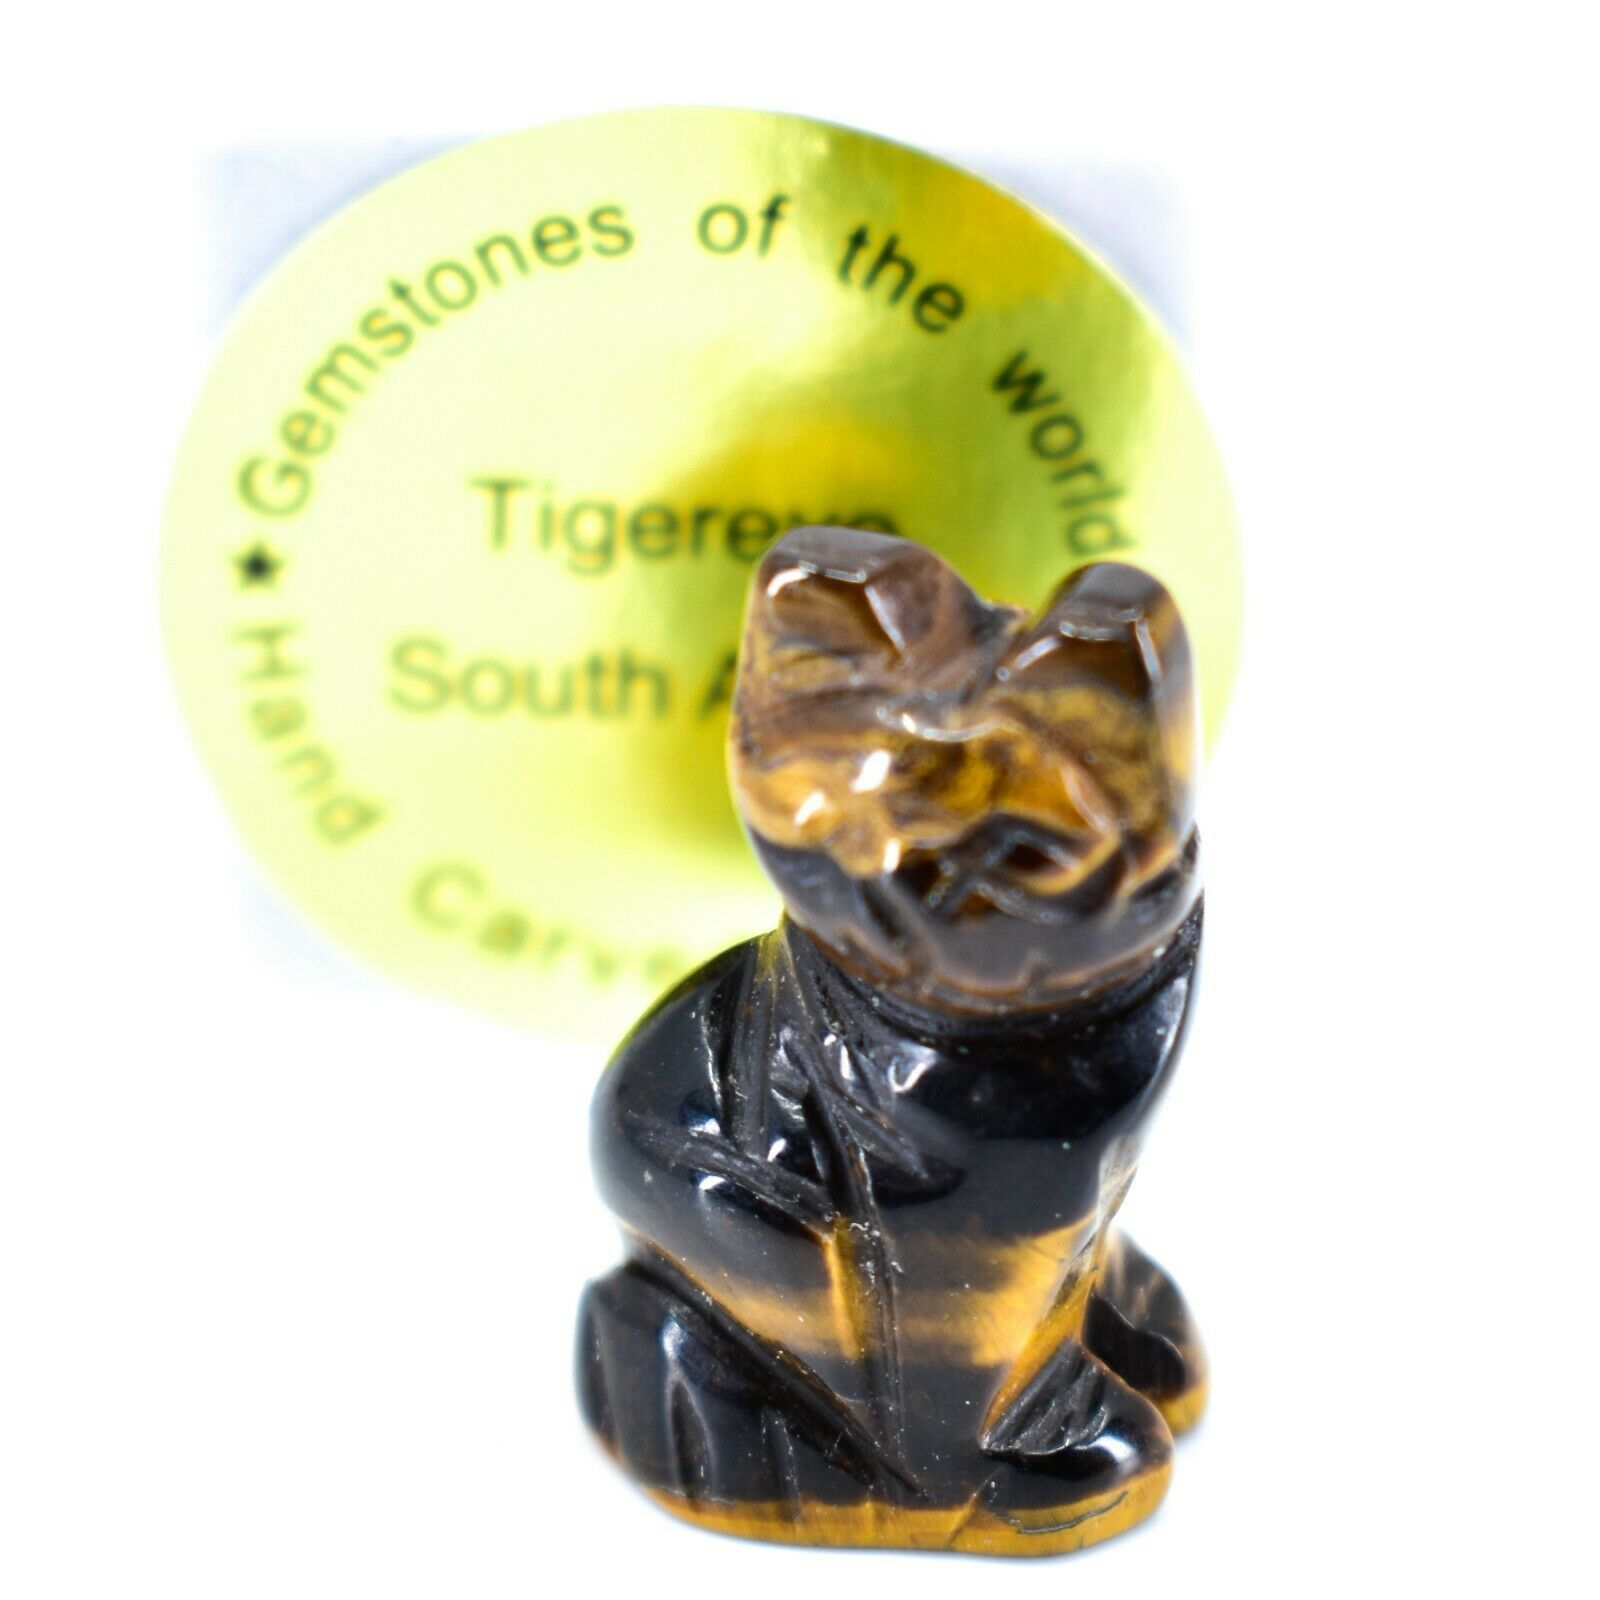 Tiger's Eye Gemstone Tiny Miniature Kitty Cat Figurine Hand Carved in China